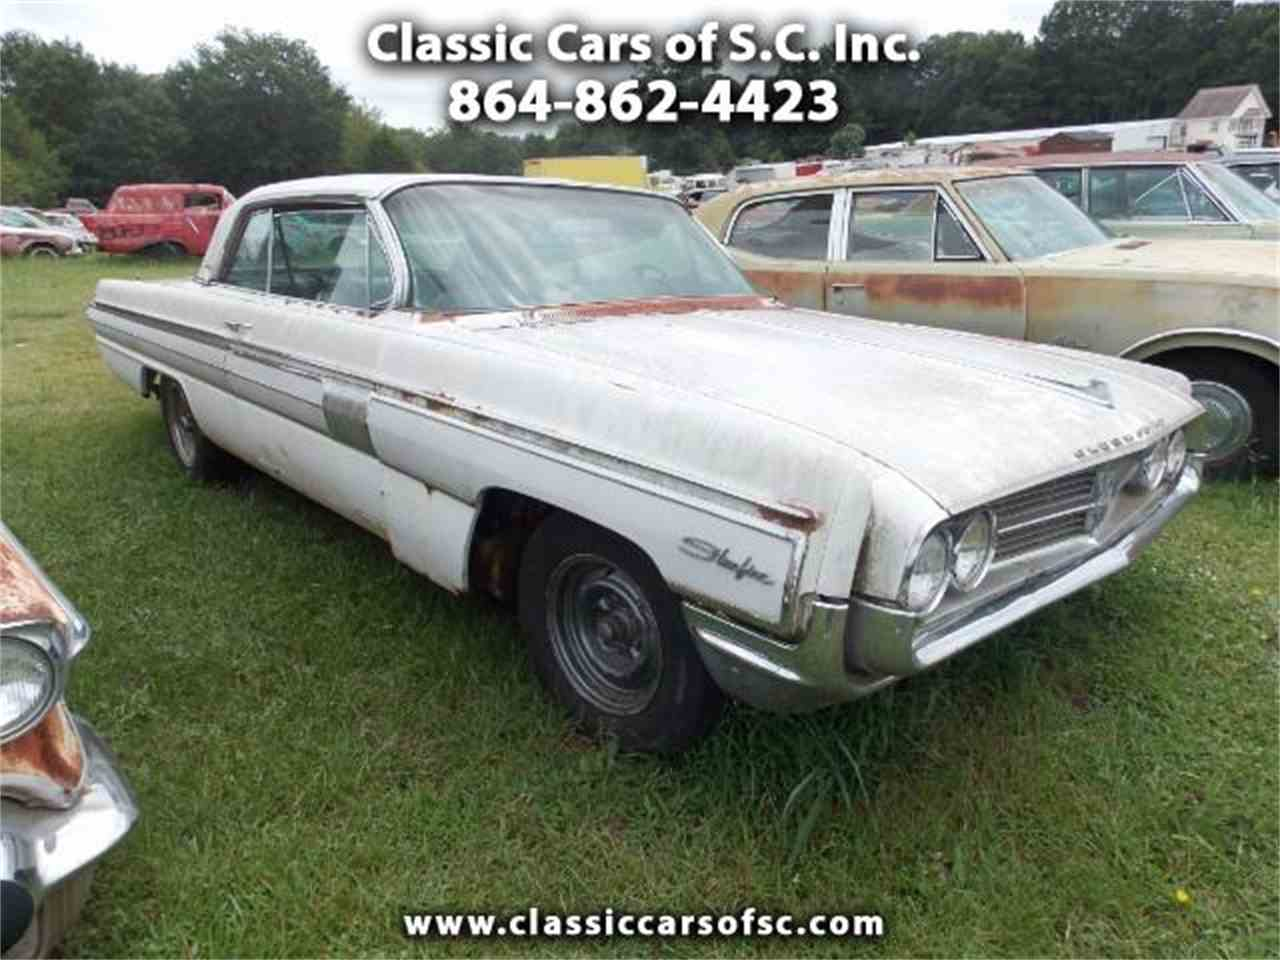 Old Fashioned Classic Cars For Sale In South Carolina Embellishment ...